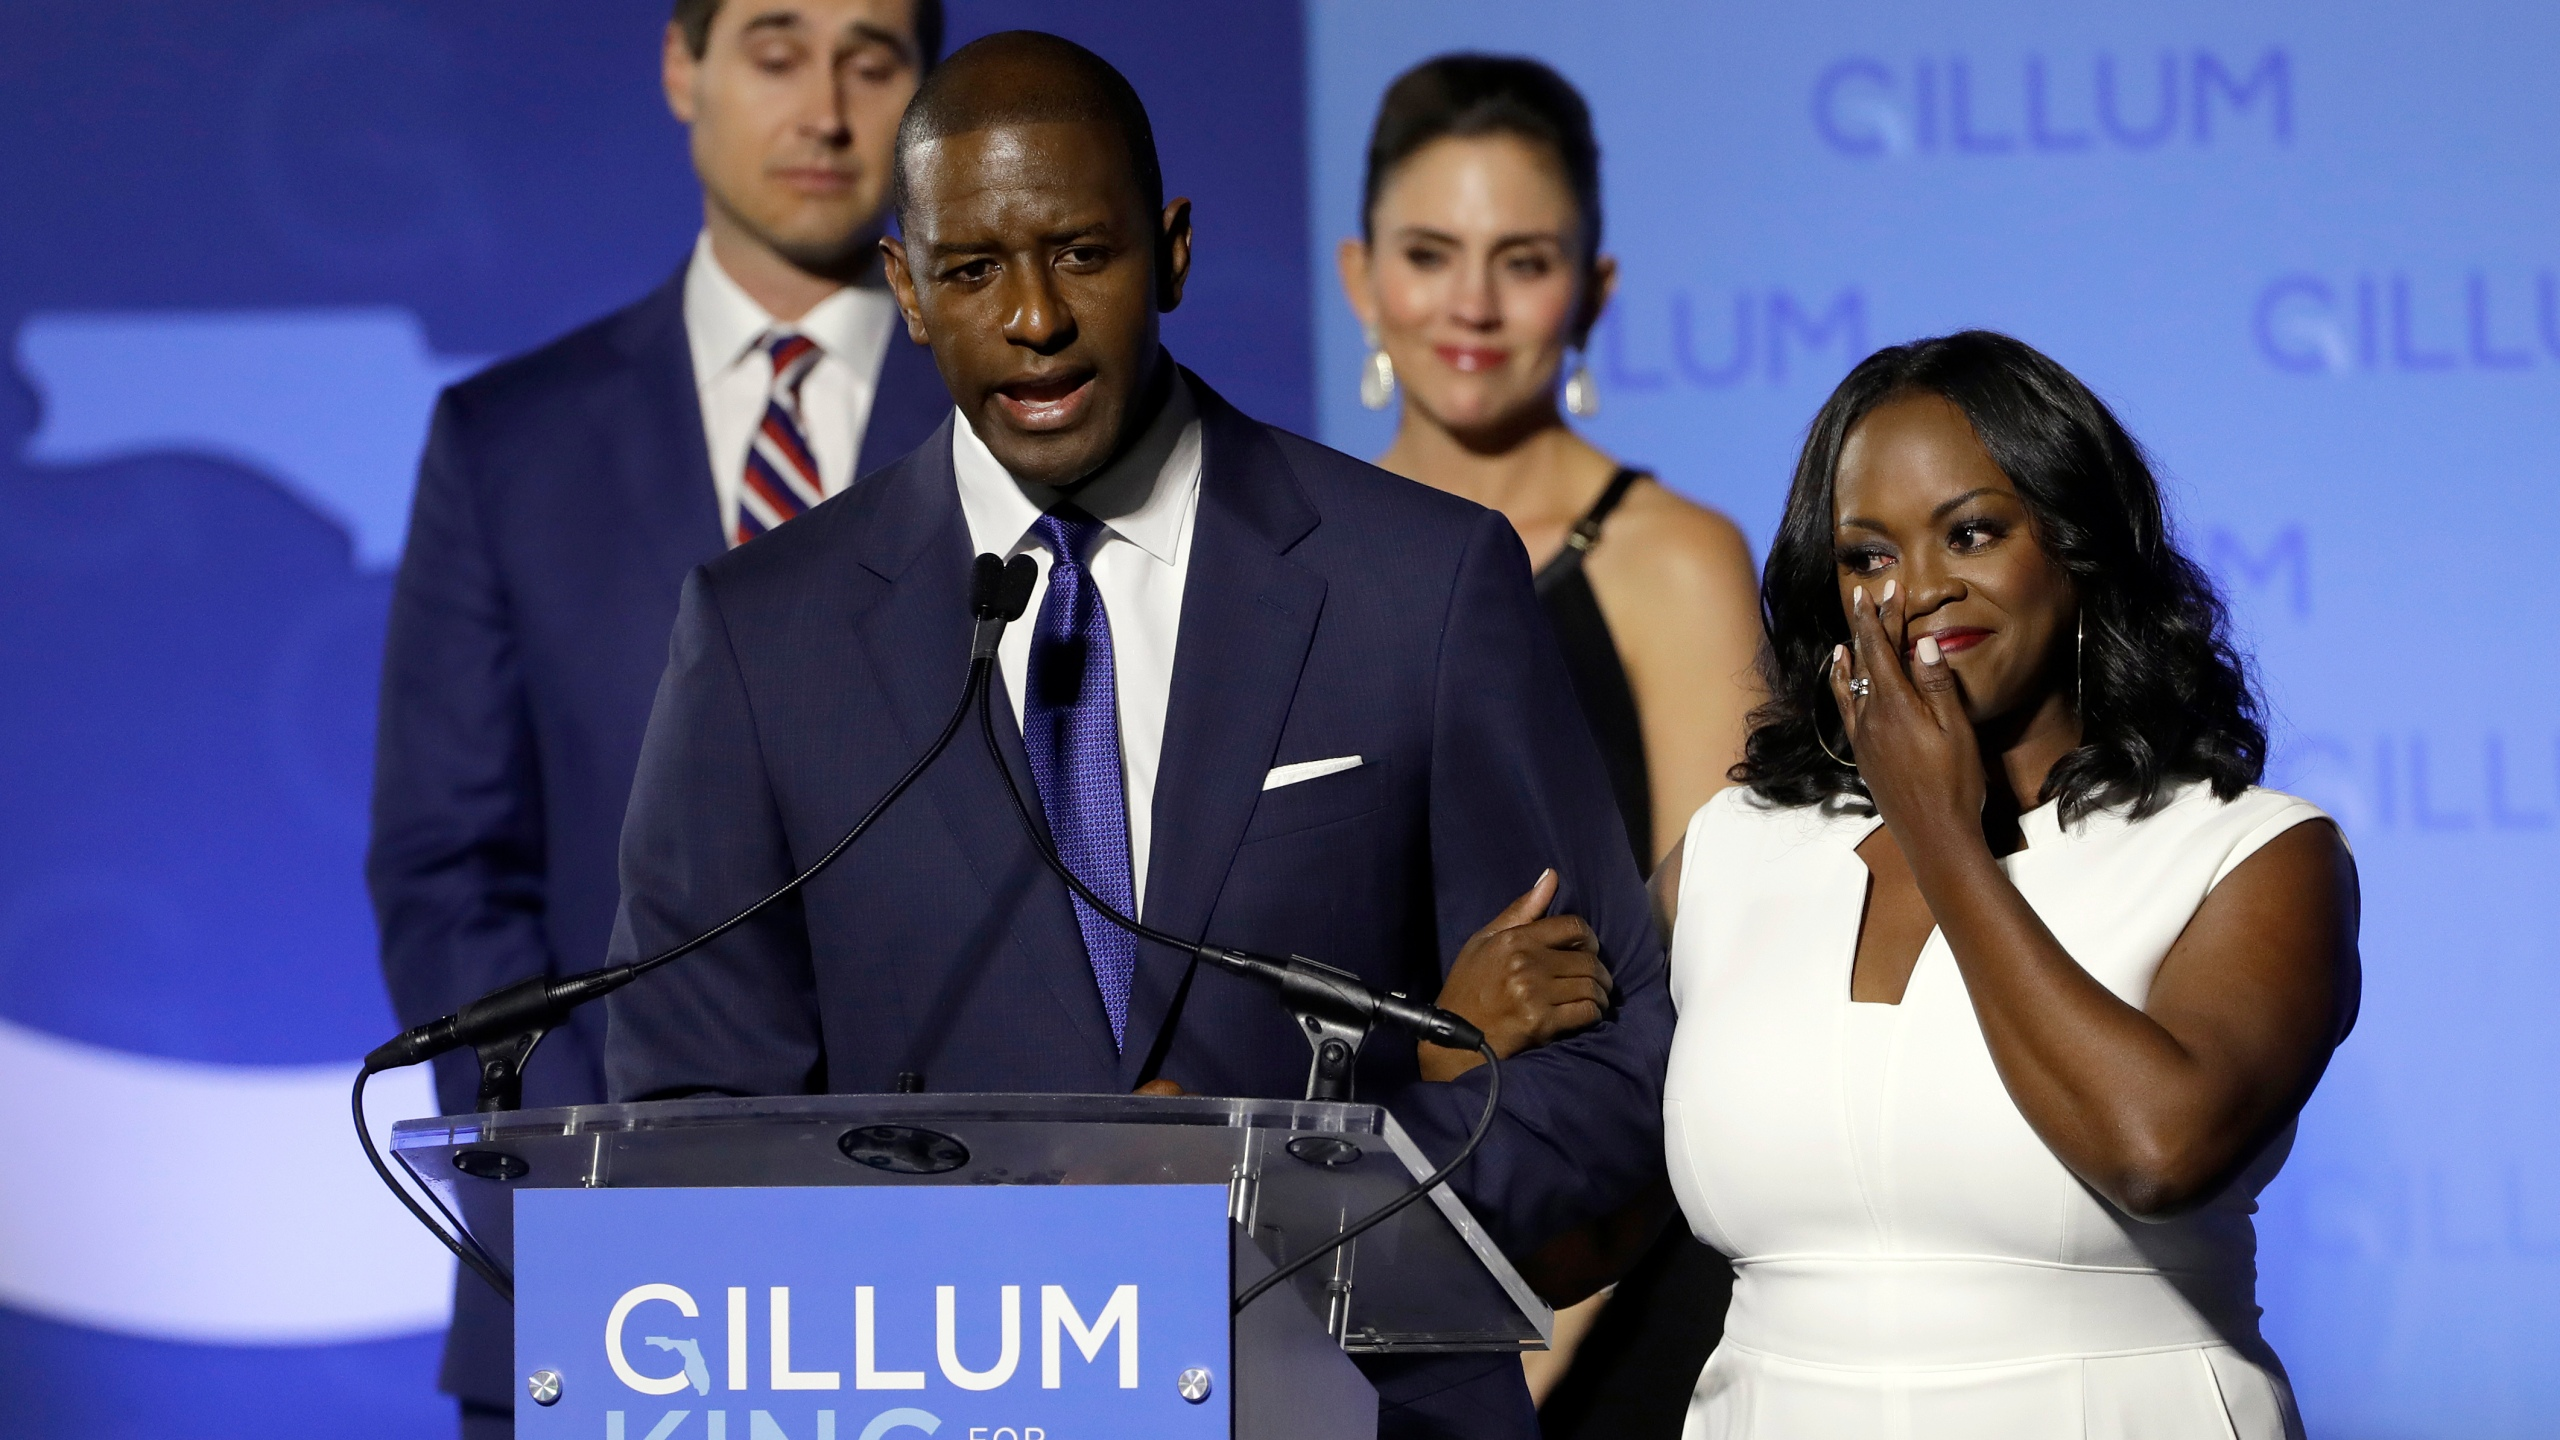 Election_2018_Governor_Gillum_Florida_61269-159532.jpg02651779